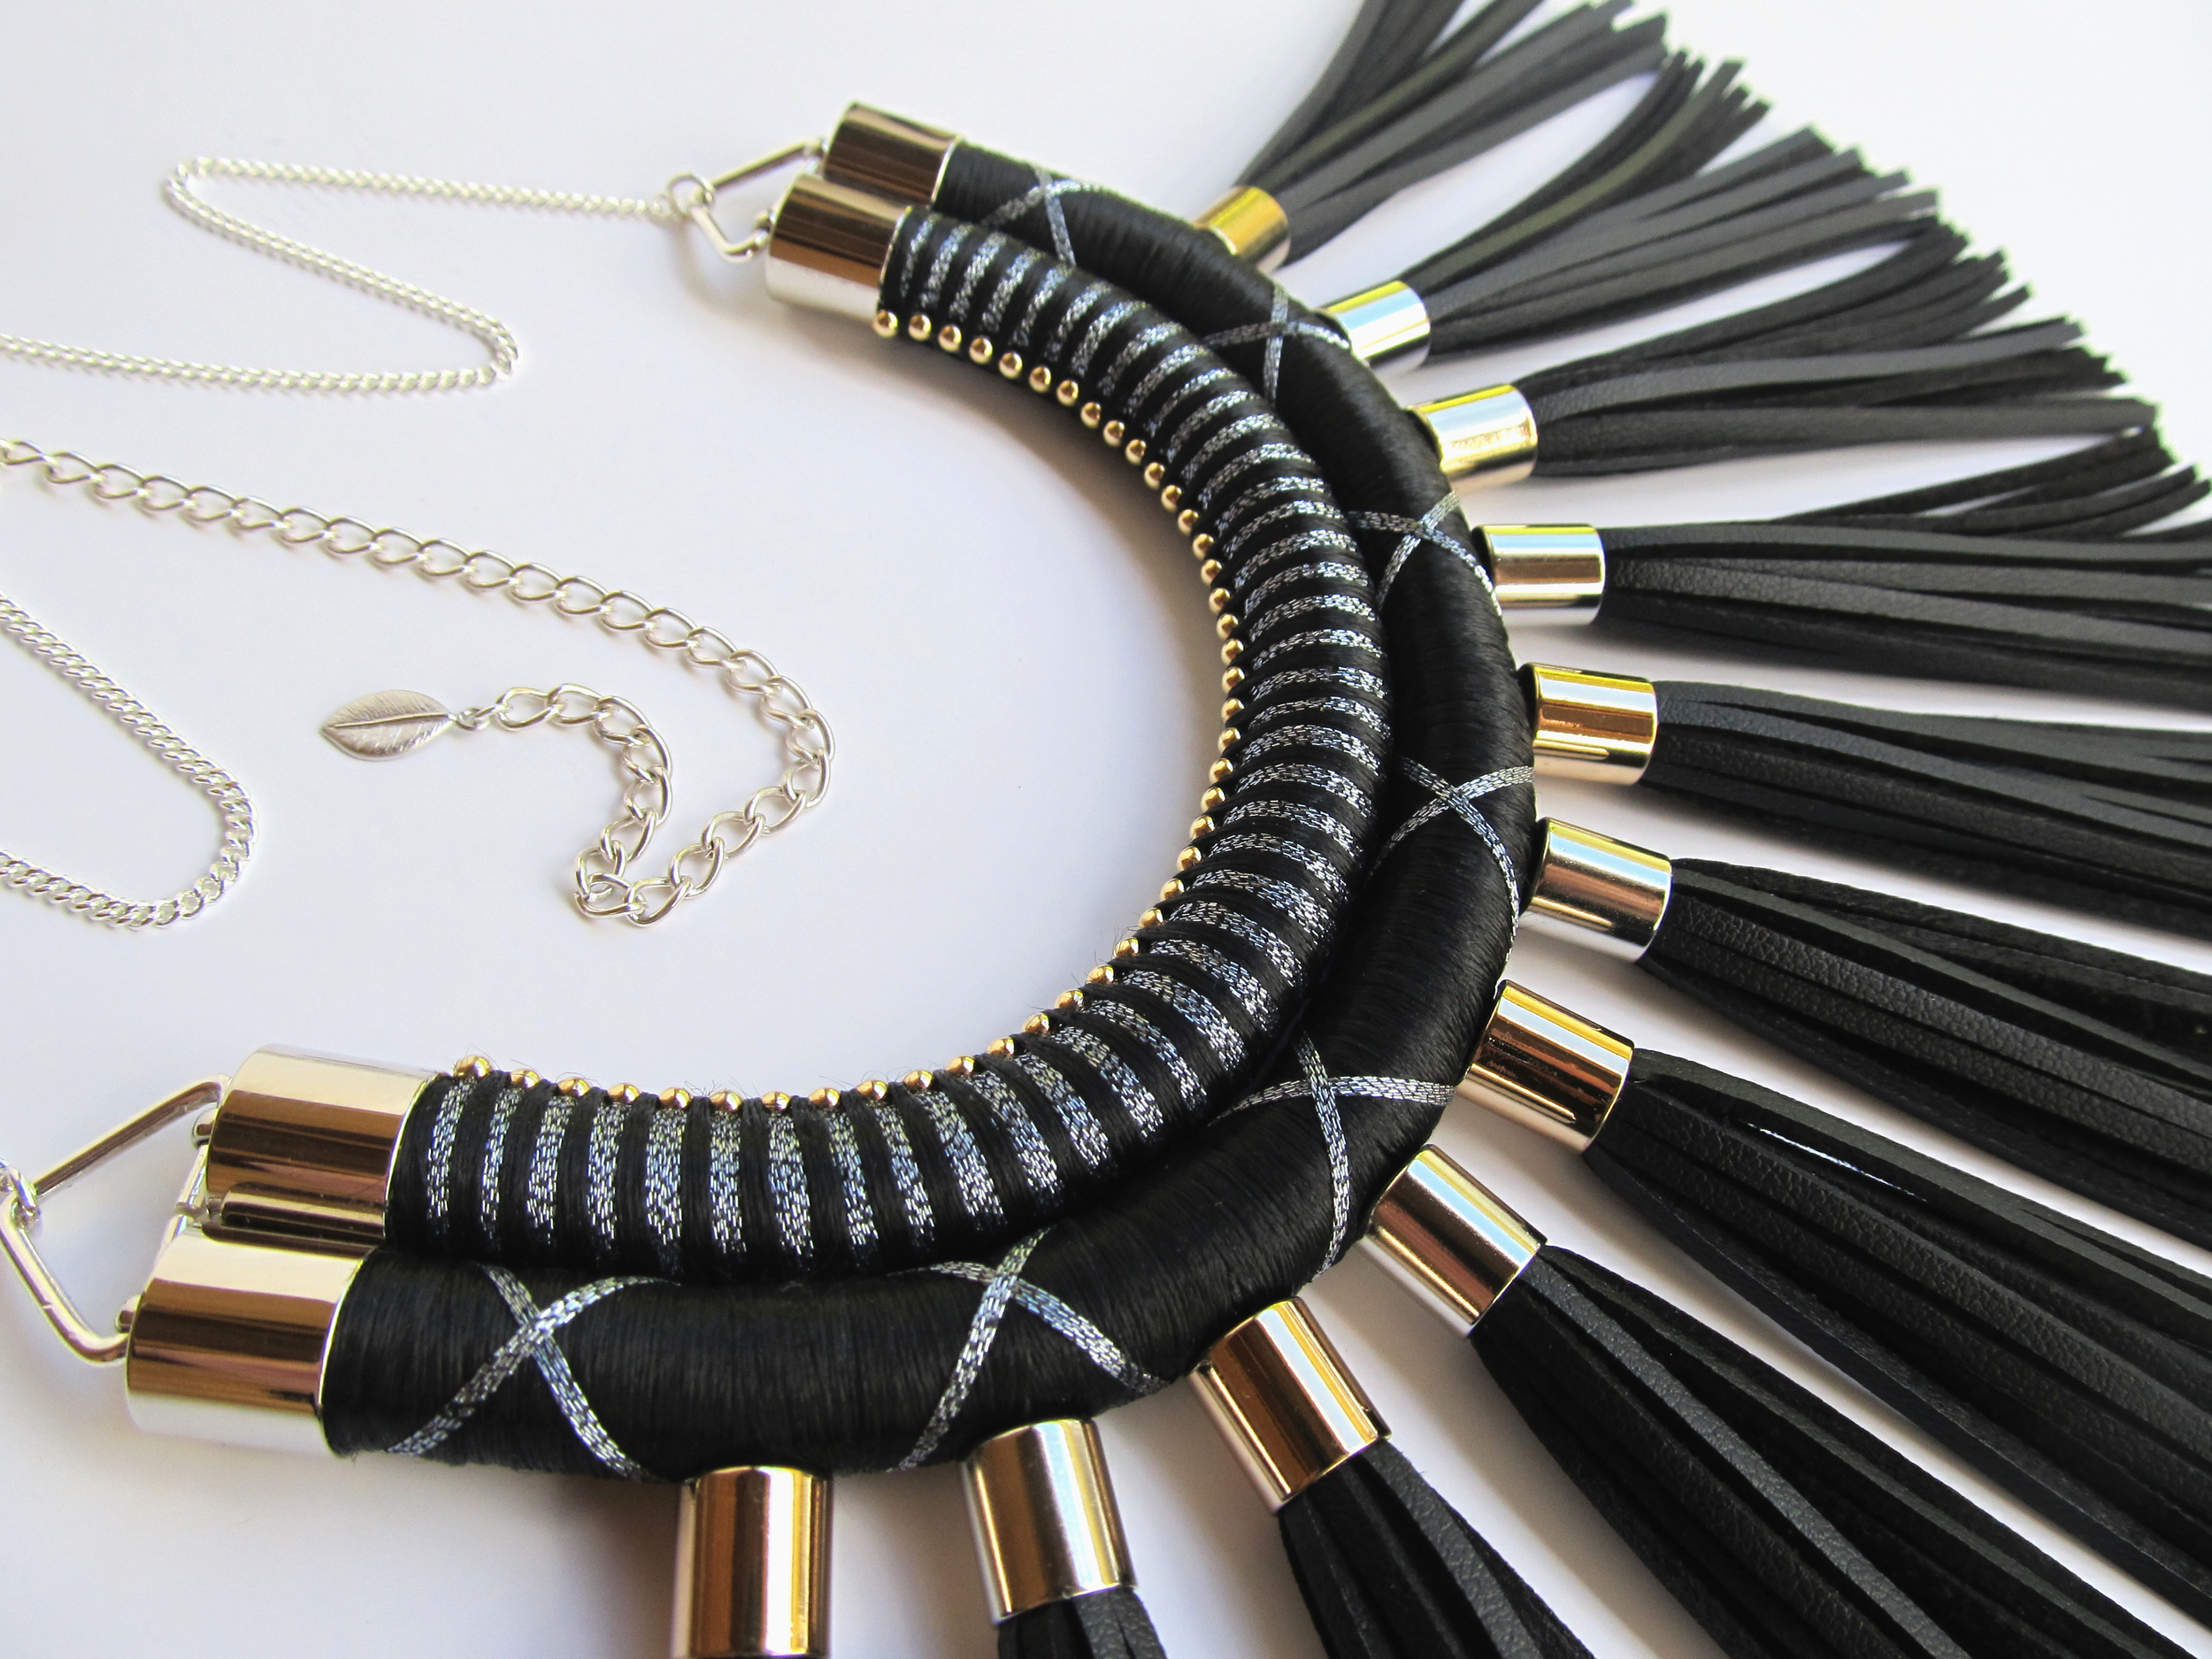 Tangelo Tree jewelry handcrafted in New Zealand, check out www.marysavel.com/blog to read all about this exciting designer